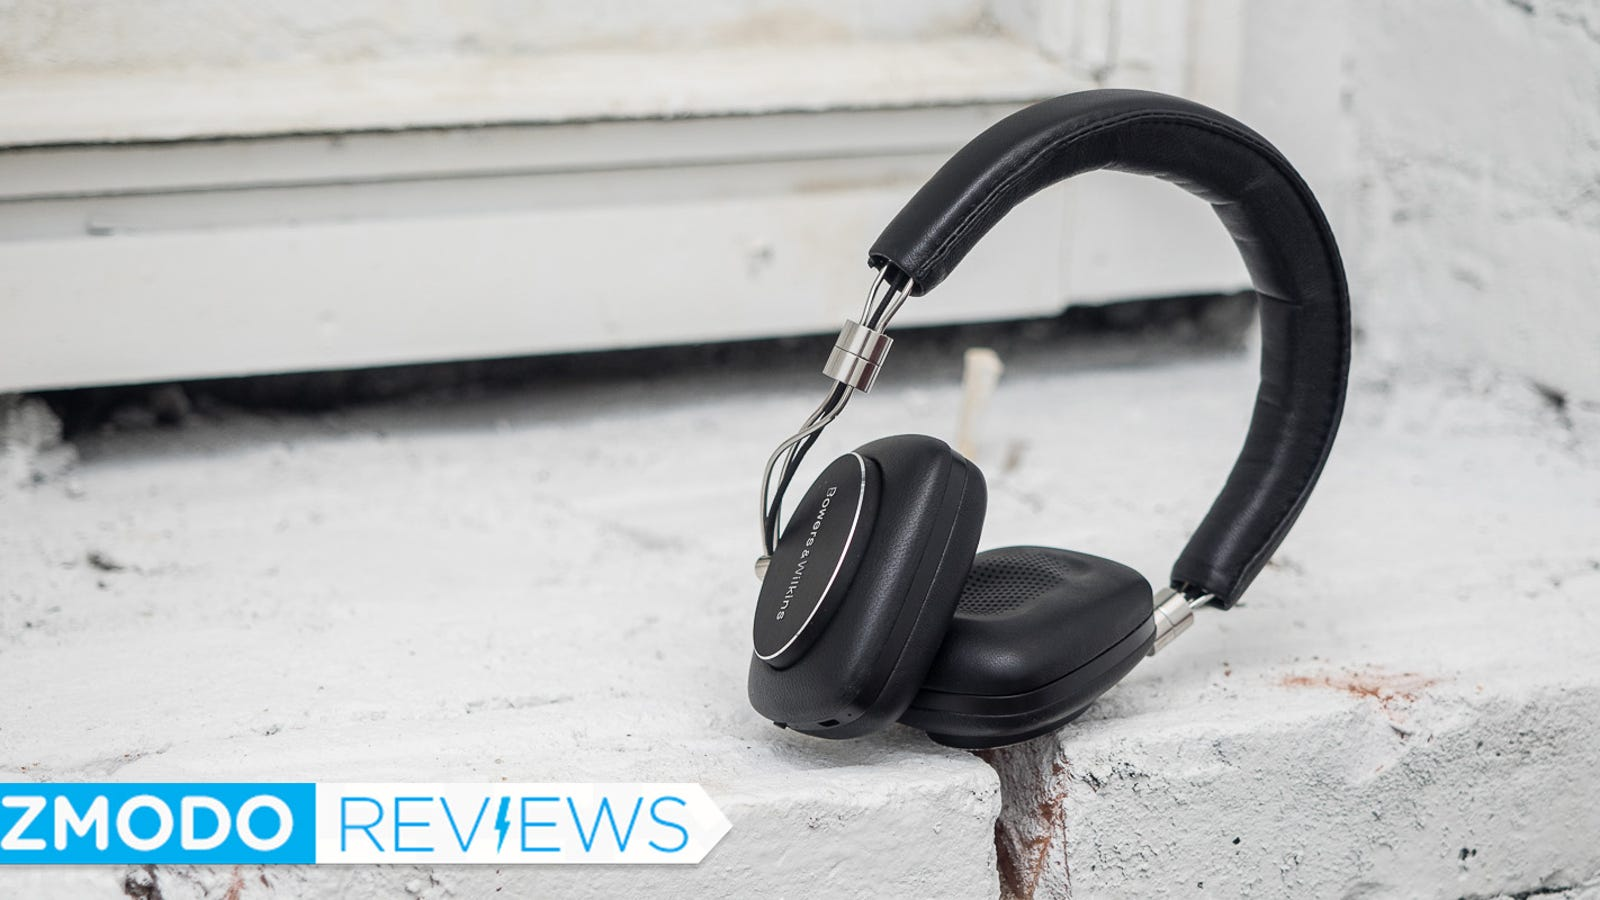 jbl wireless headphones mic - Bowers & Wilkins' First Wireless Headphones Are Brilliant—Except for One Thing